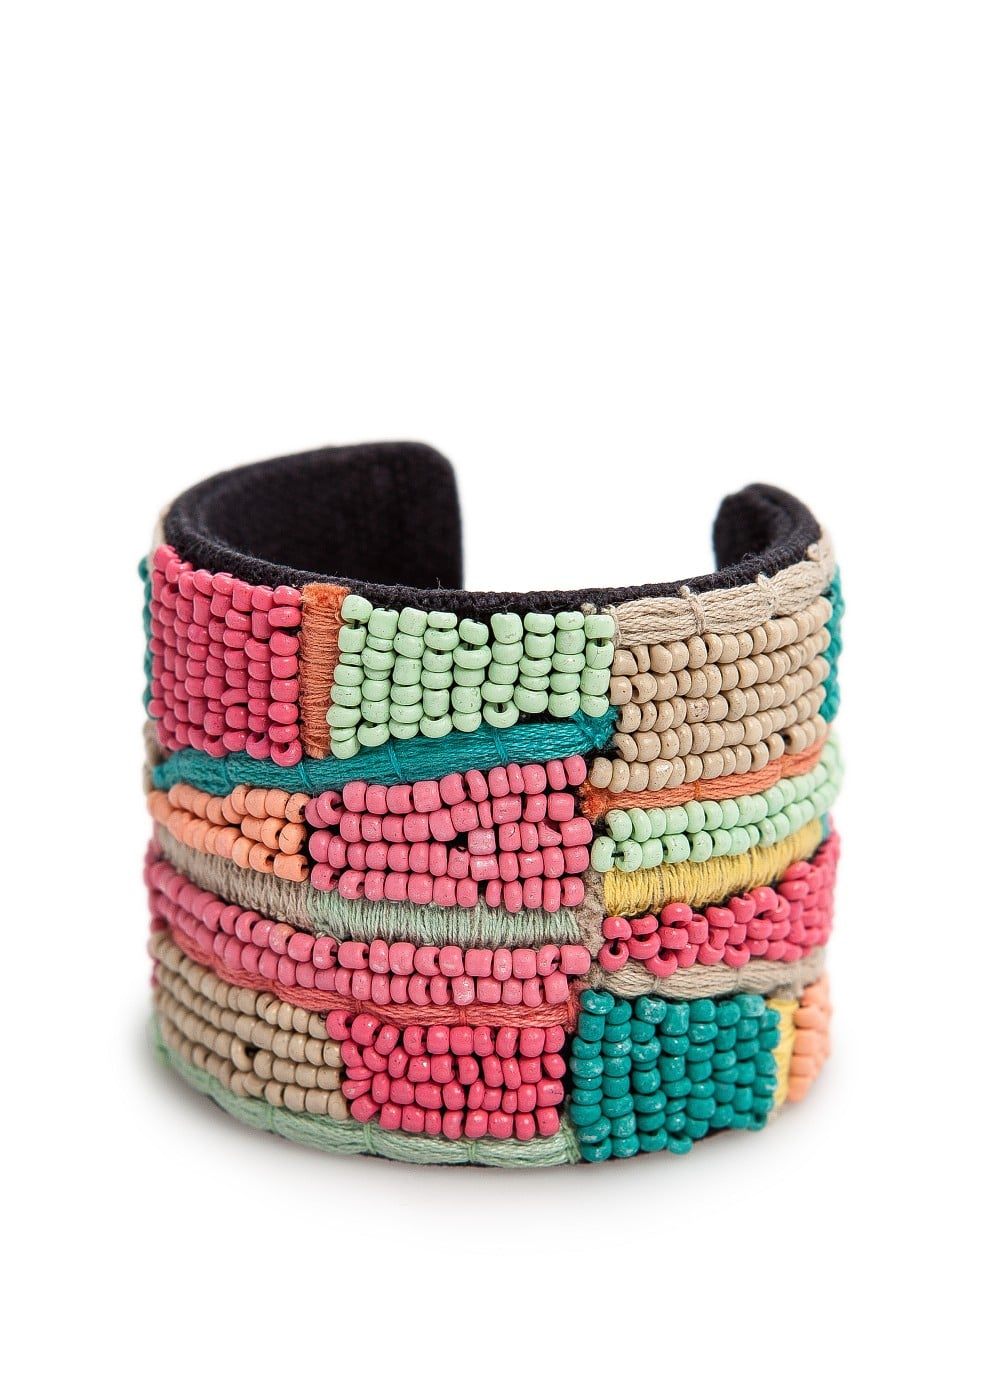 Beads embroidered cuff